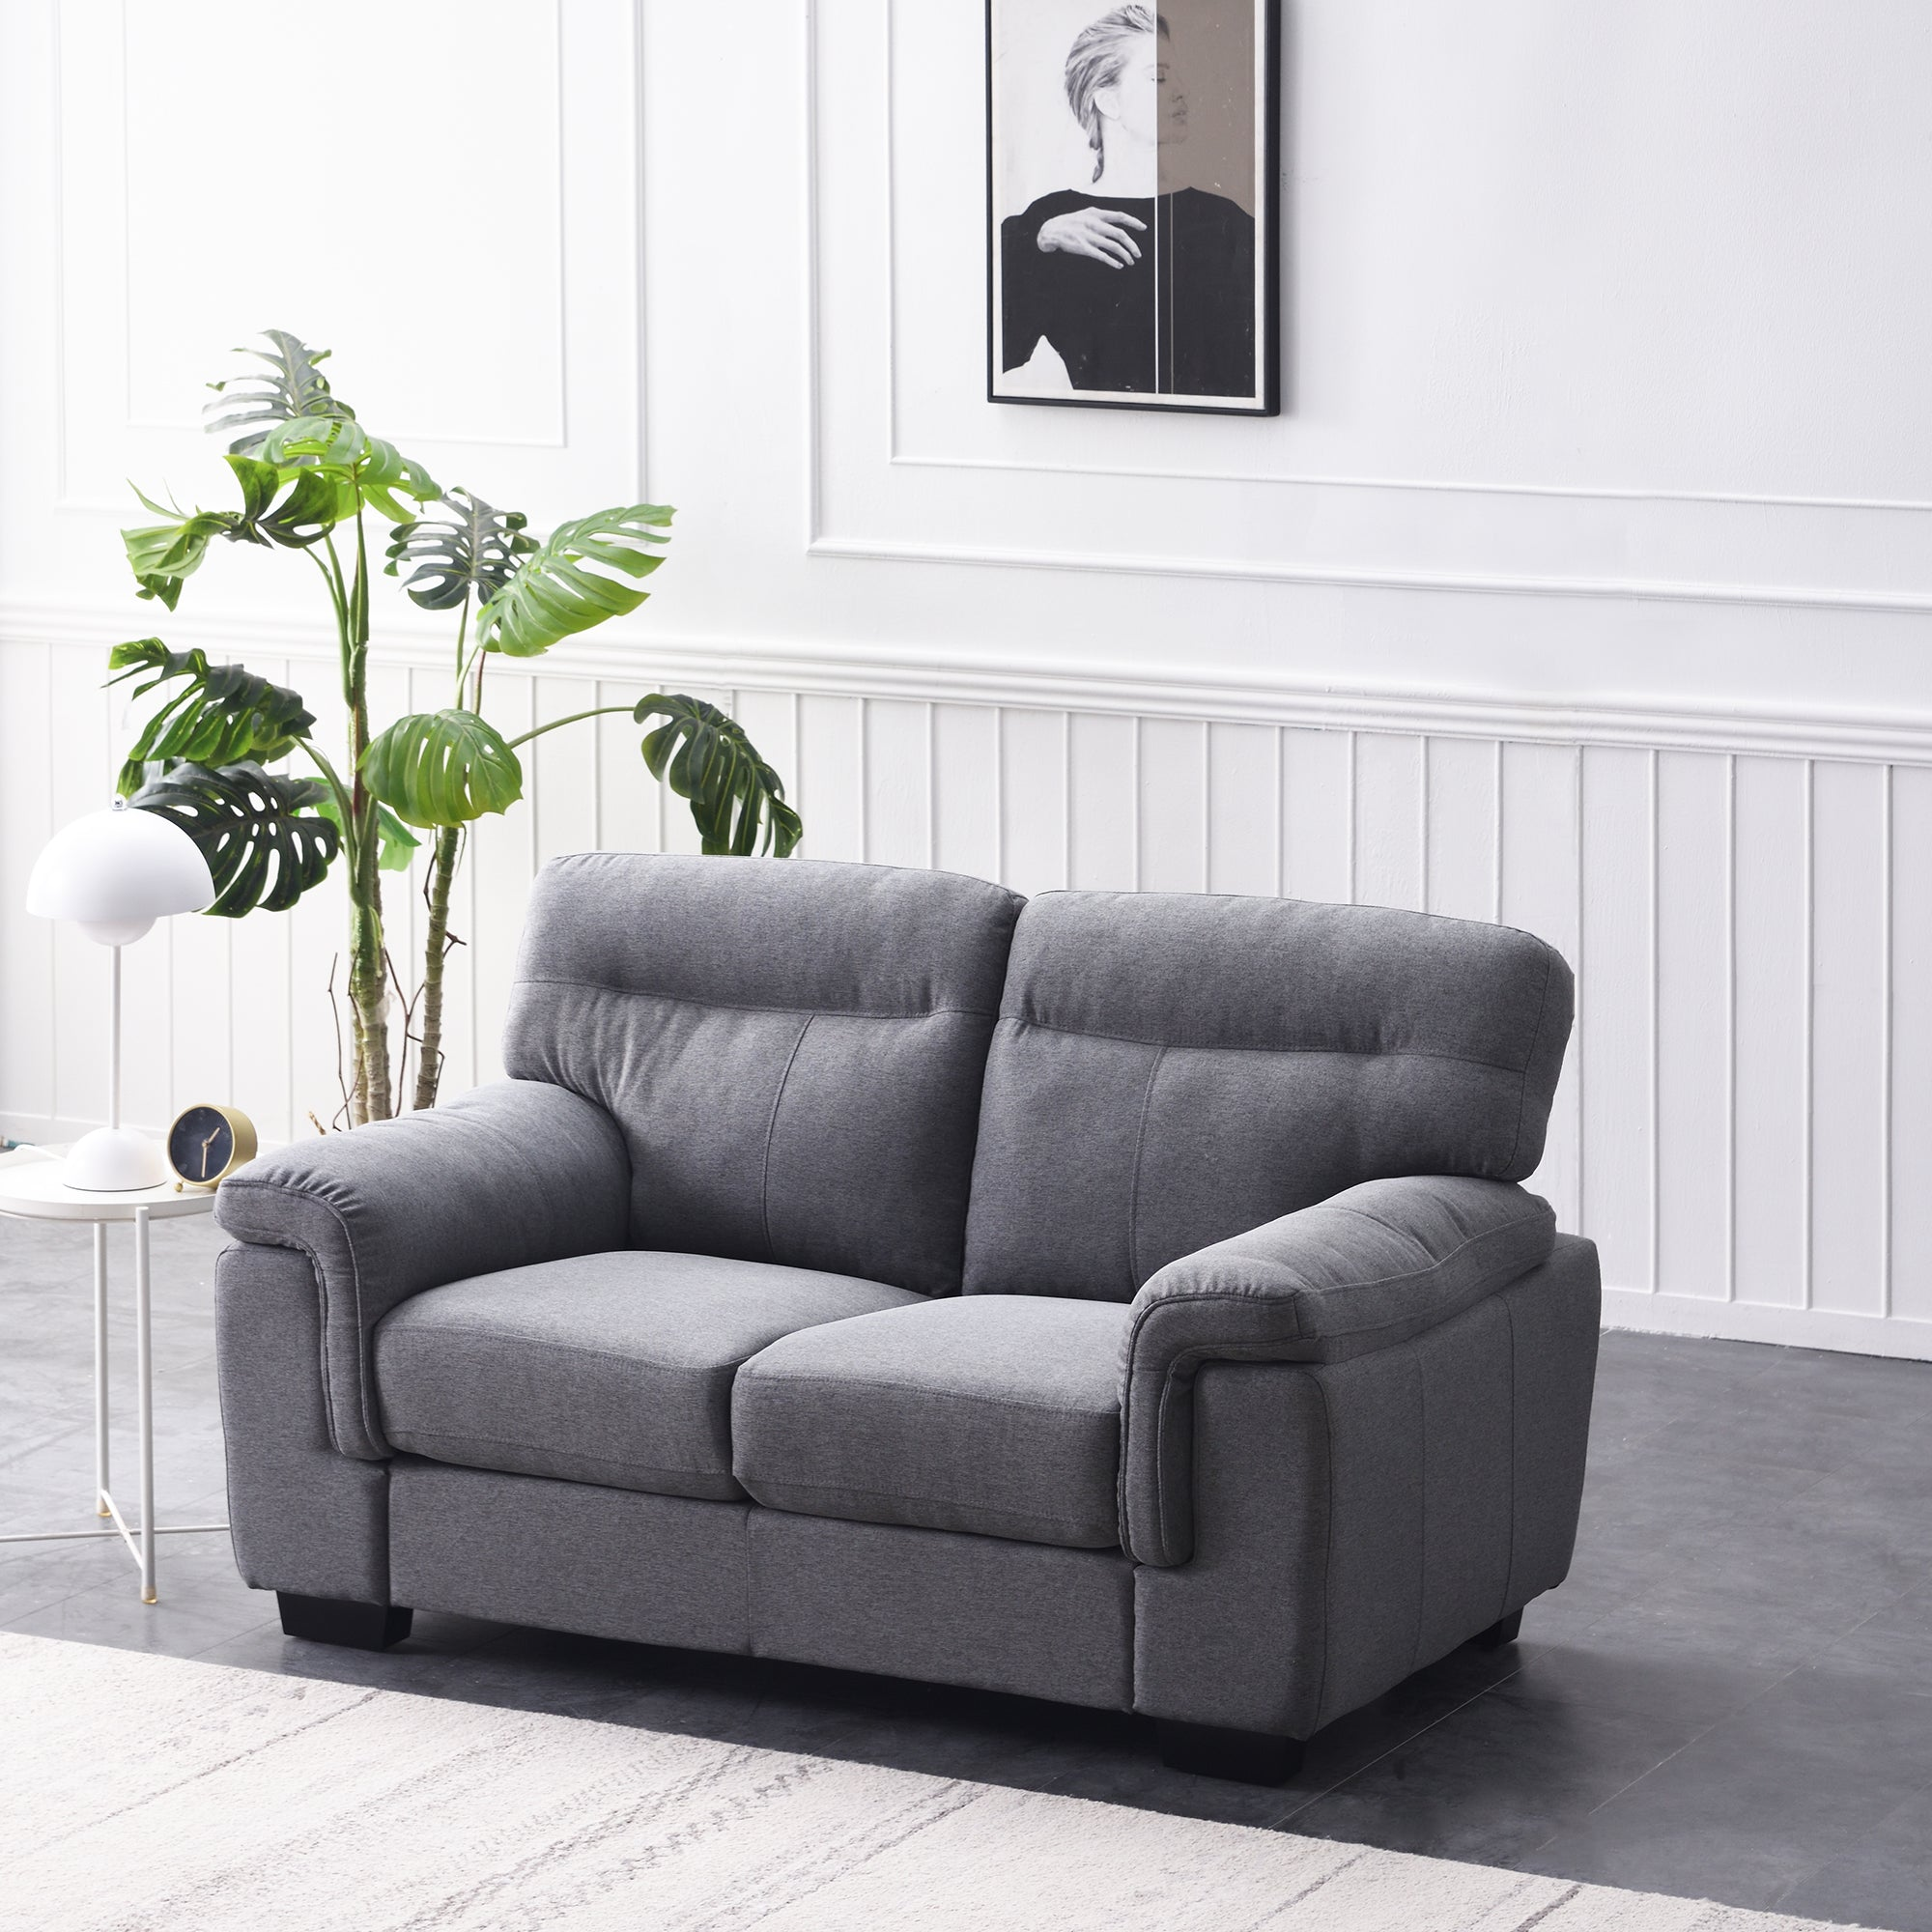 Meriden sofa range in Grey Fabric 1